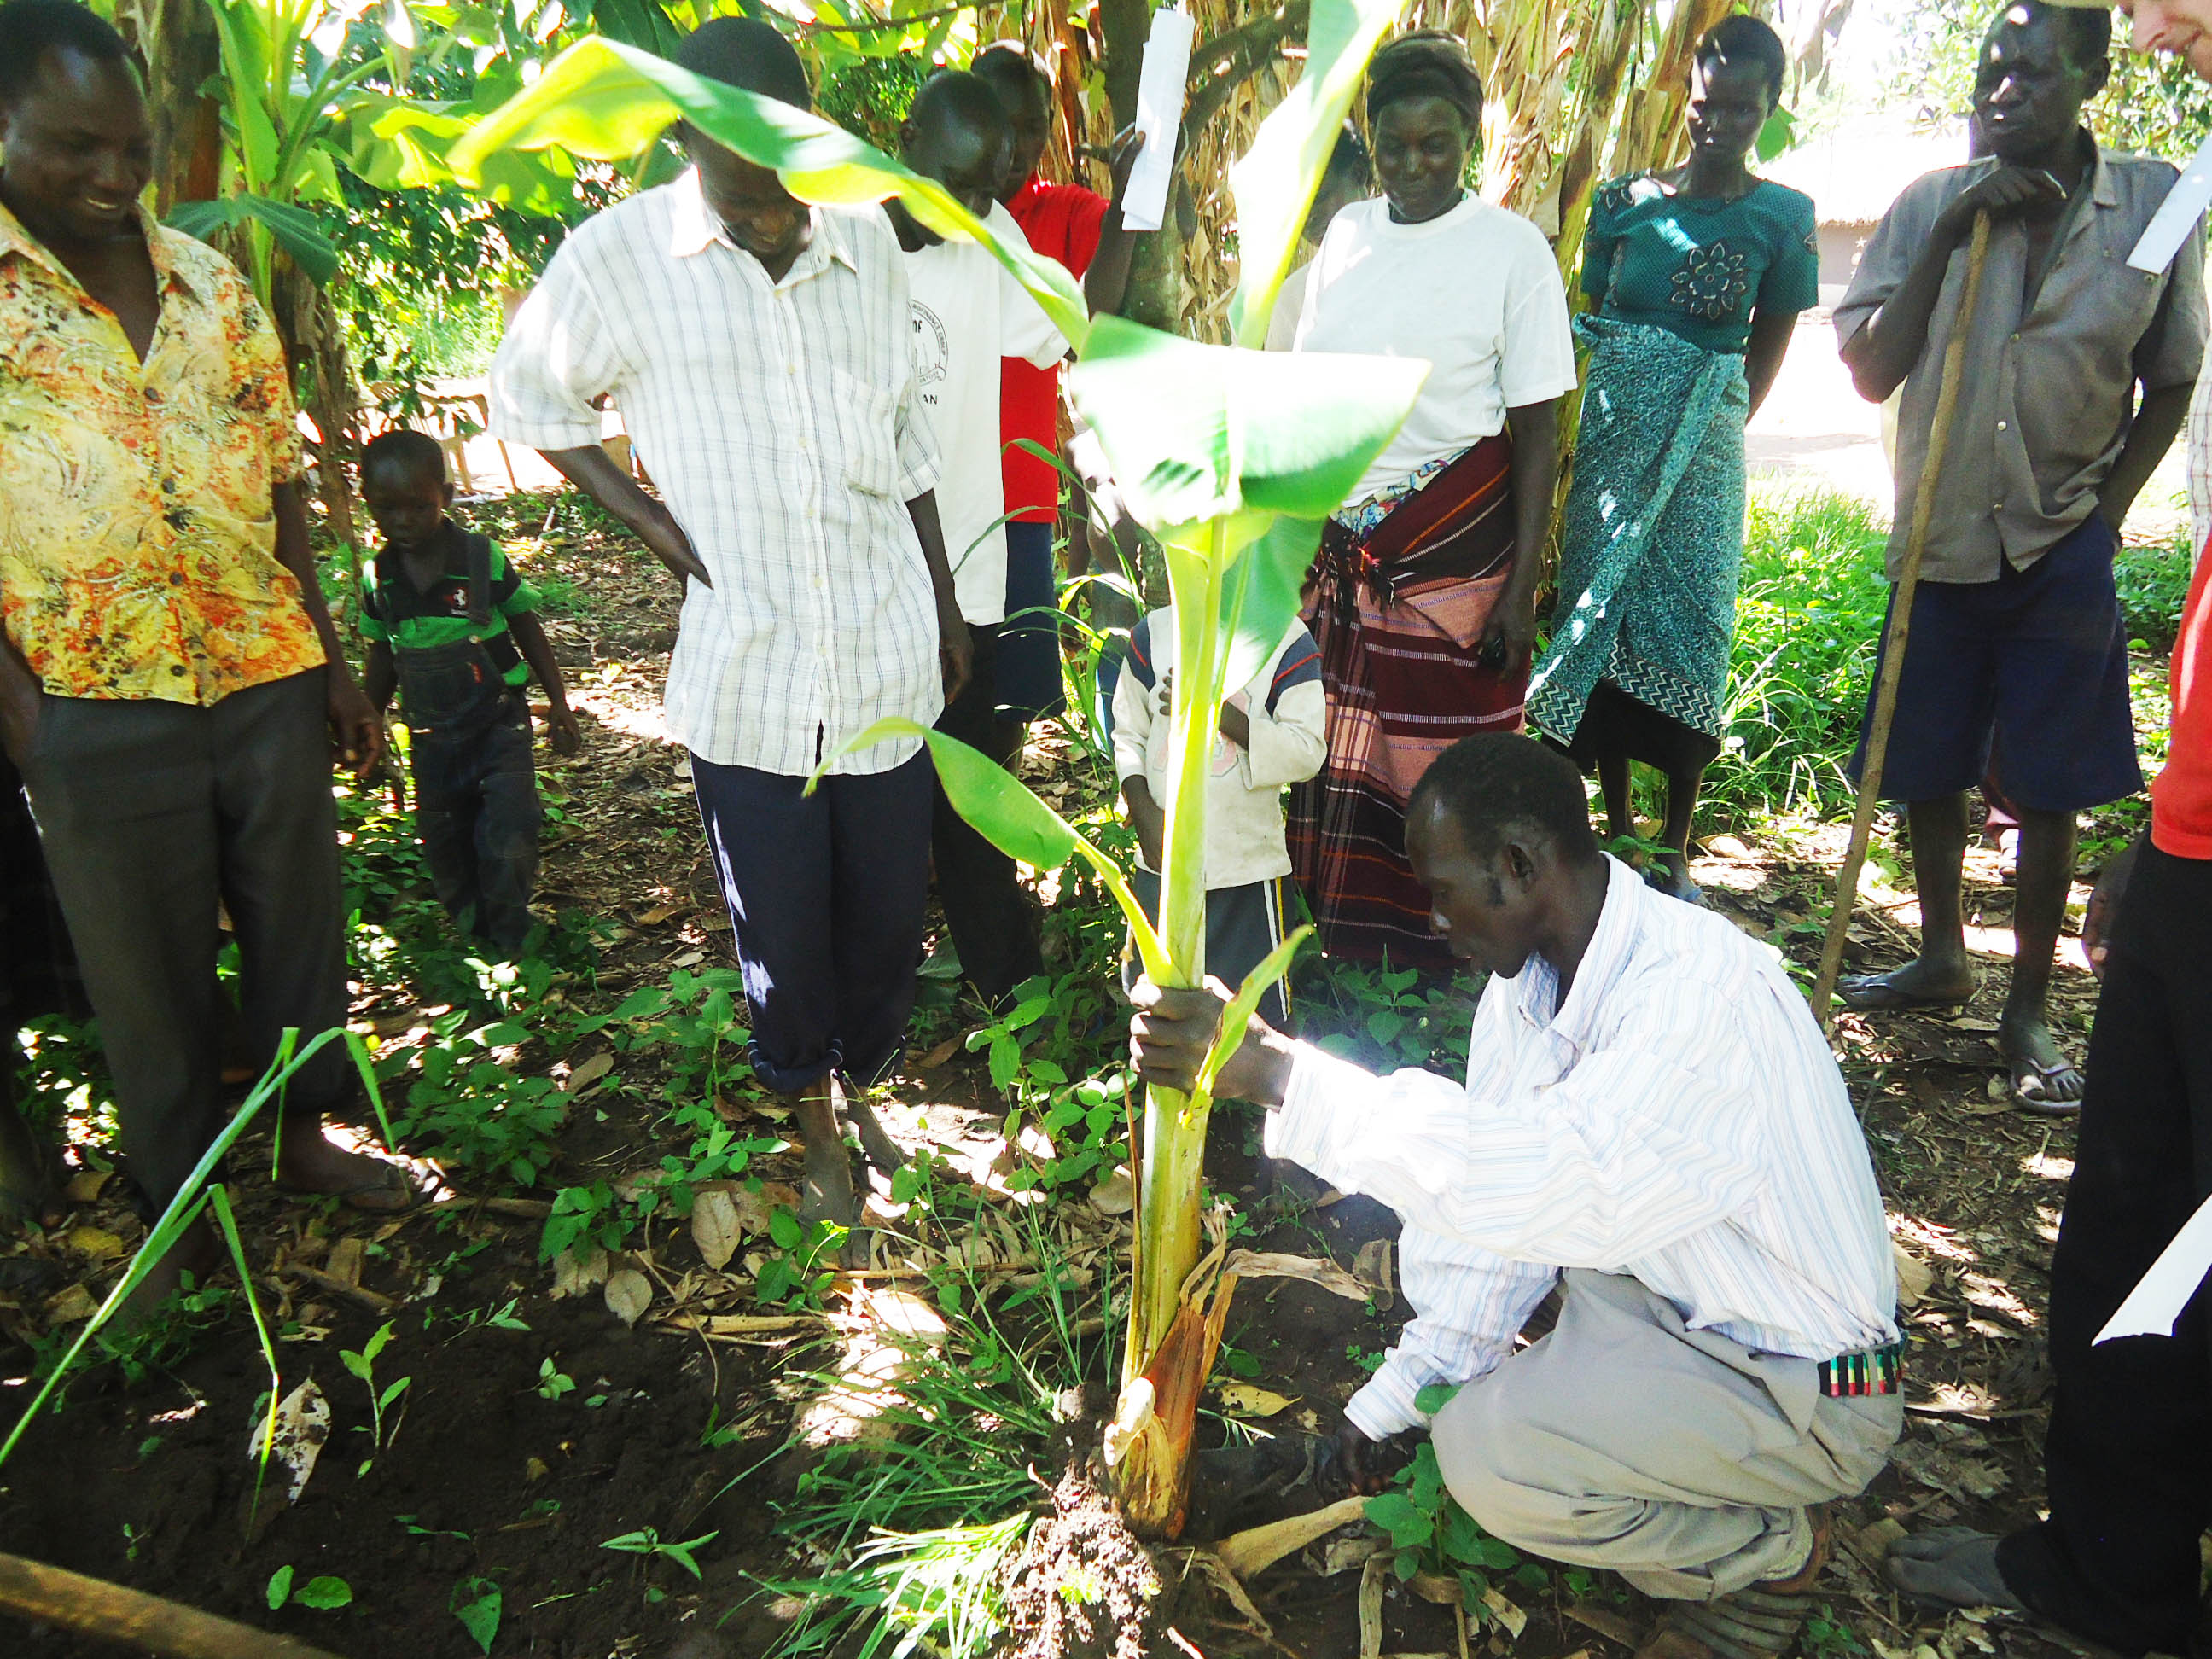 People learning how to plant and grow bananas